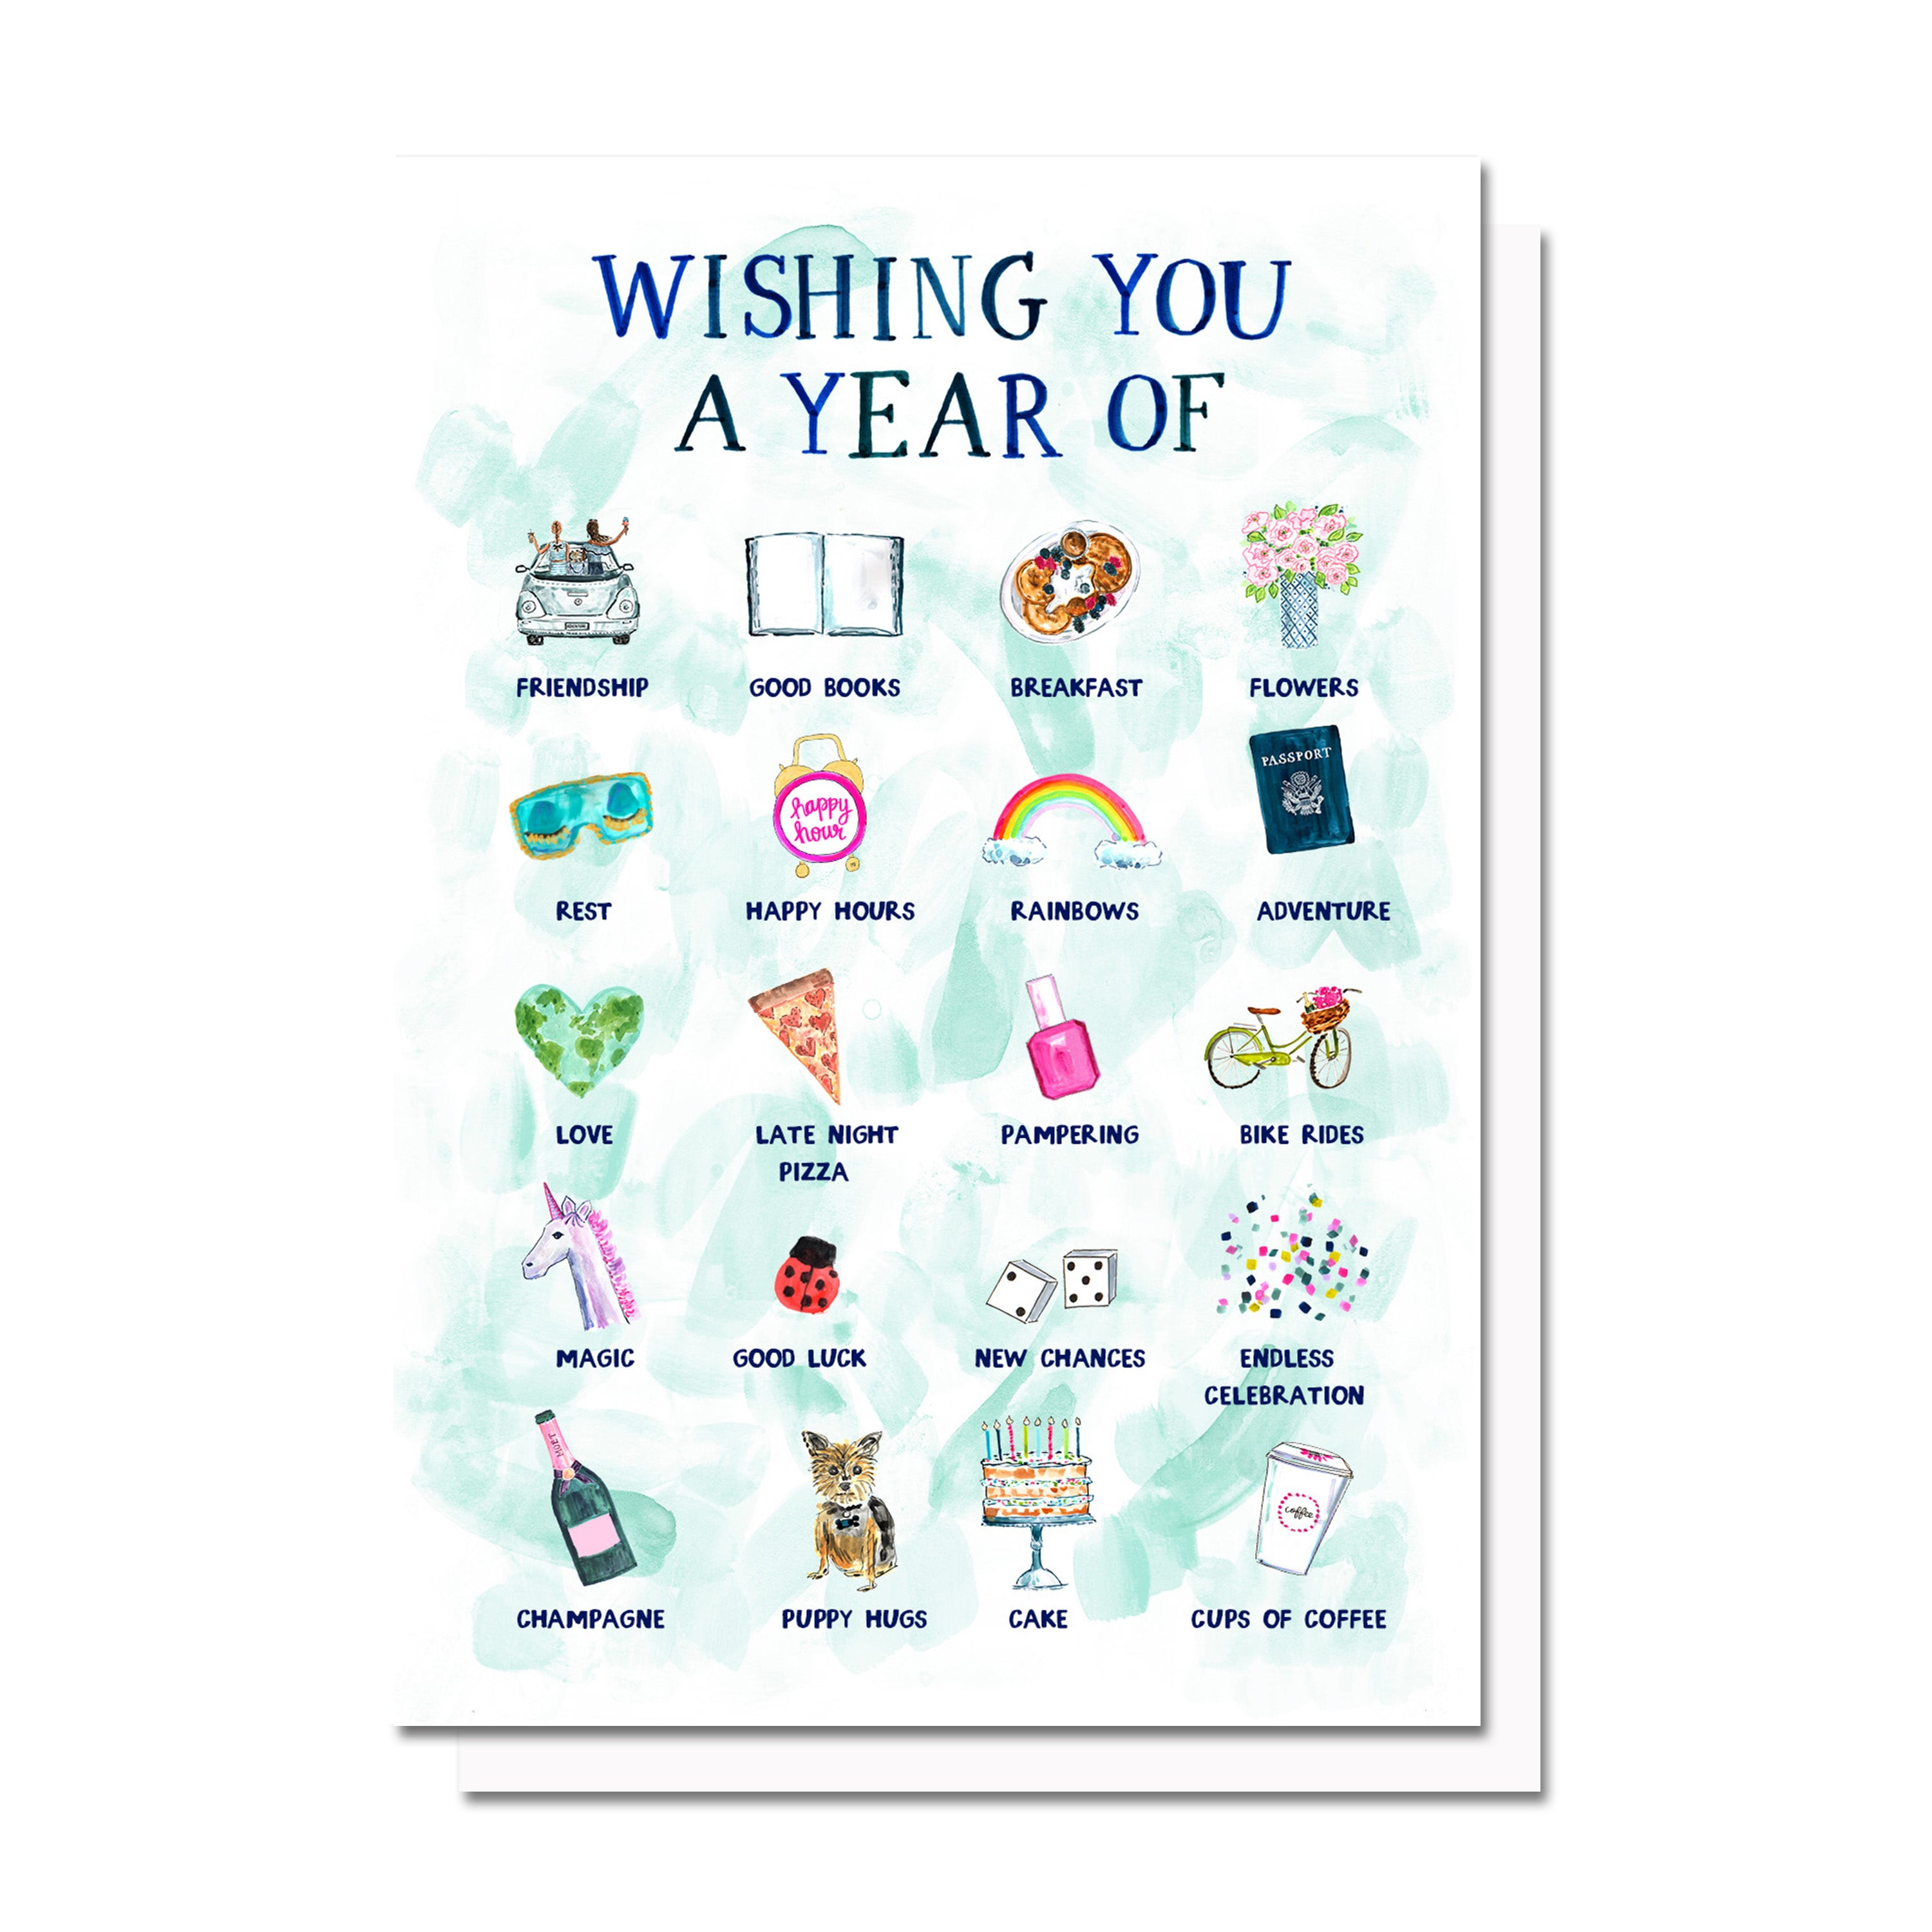 birthdaynew year wishes card